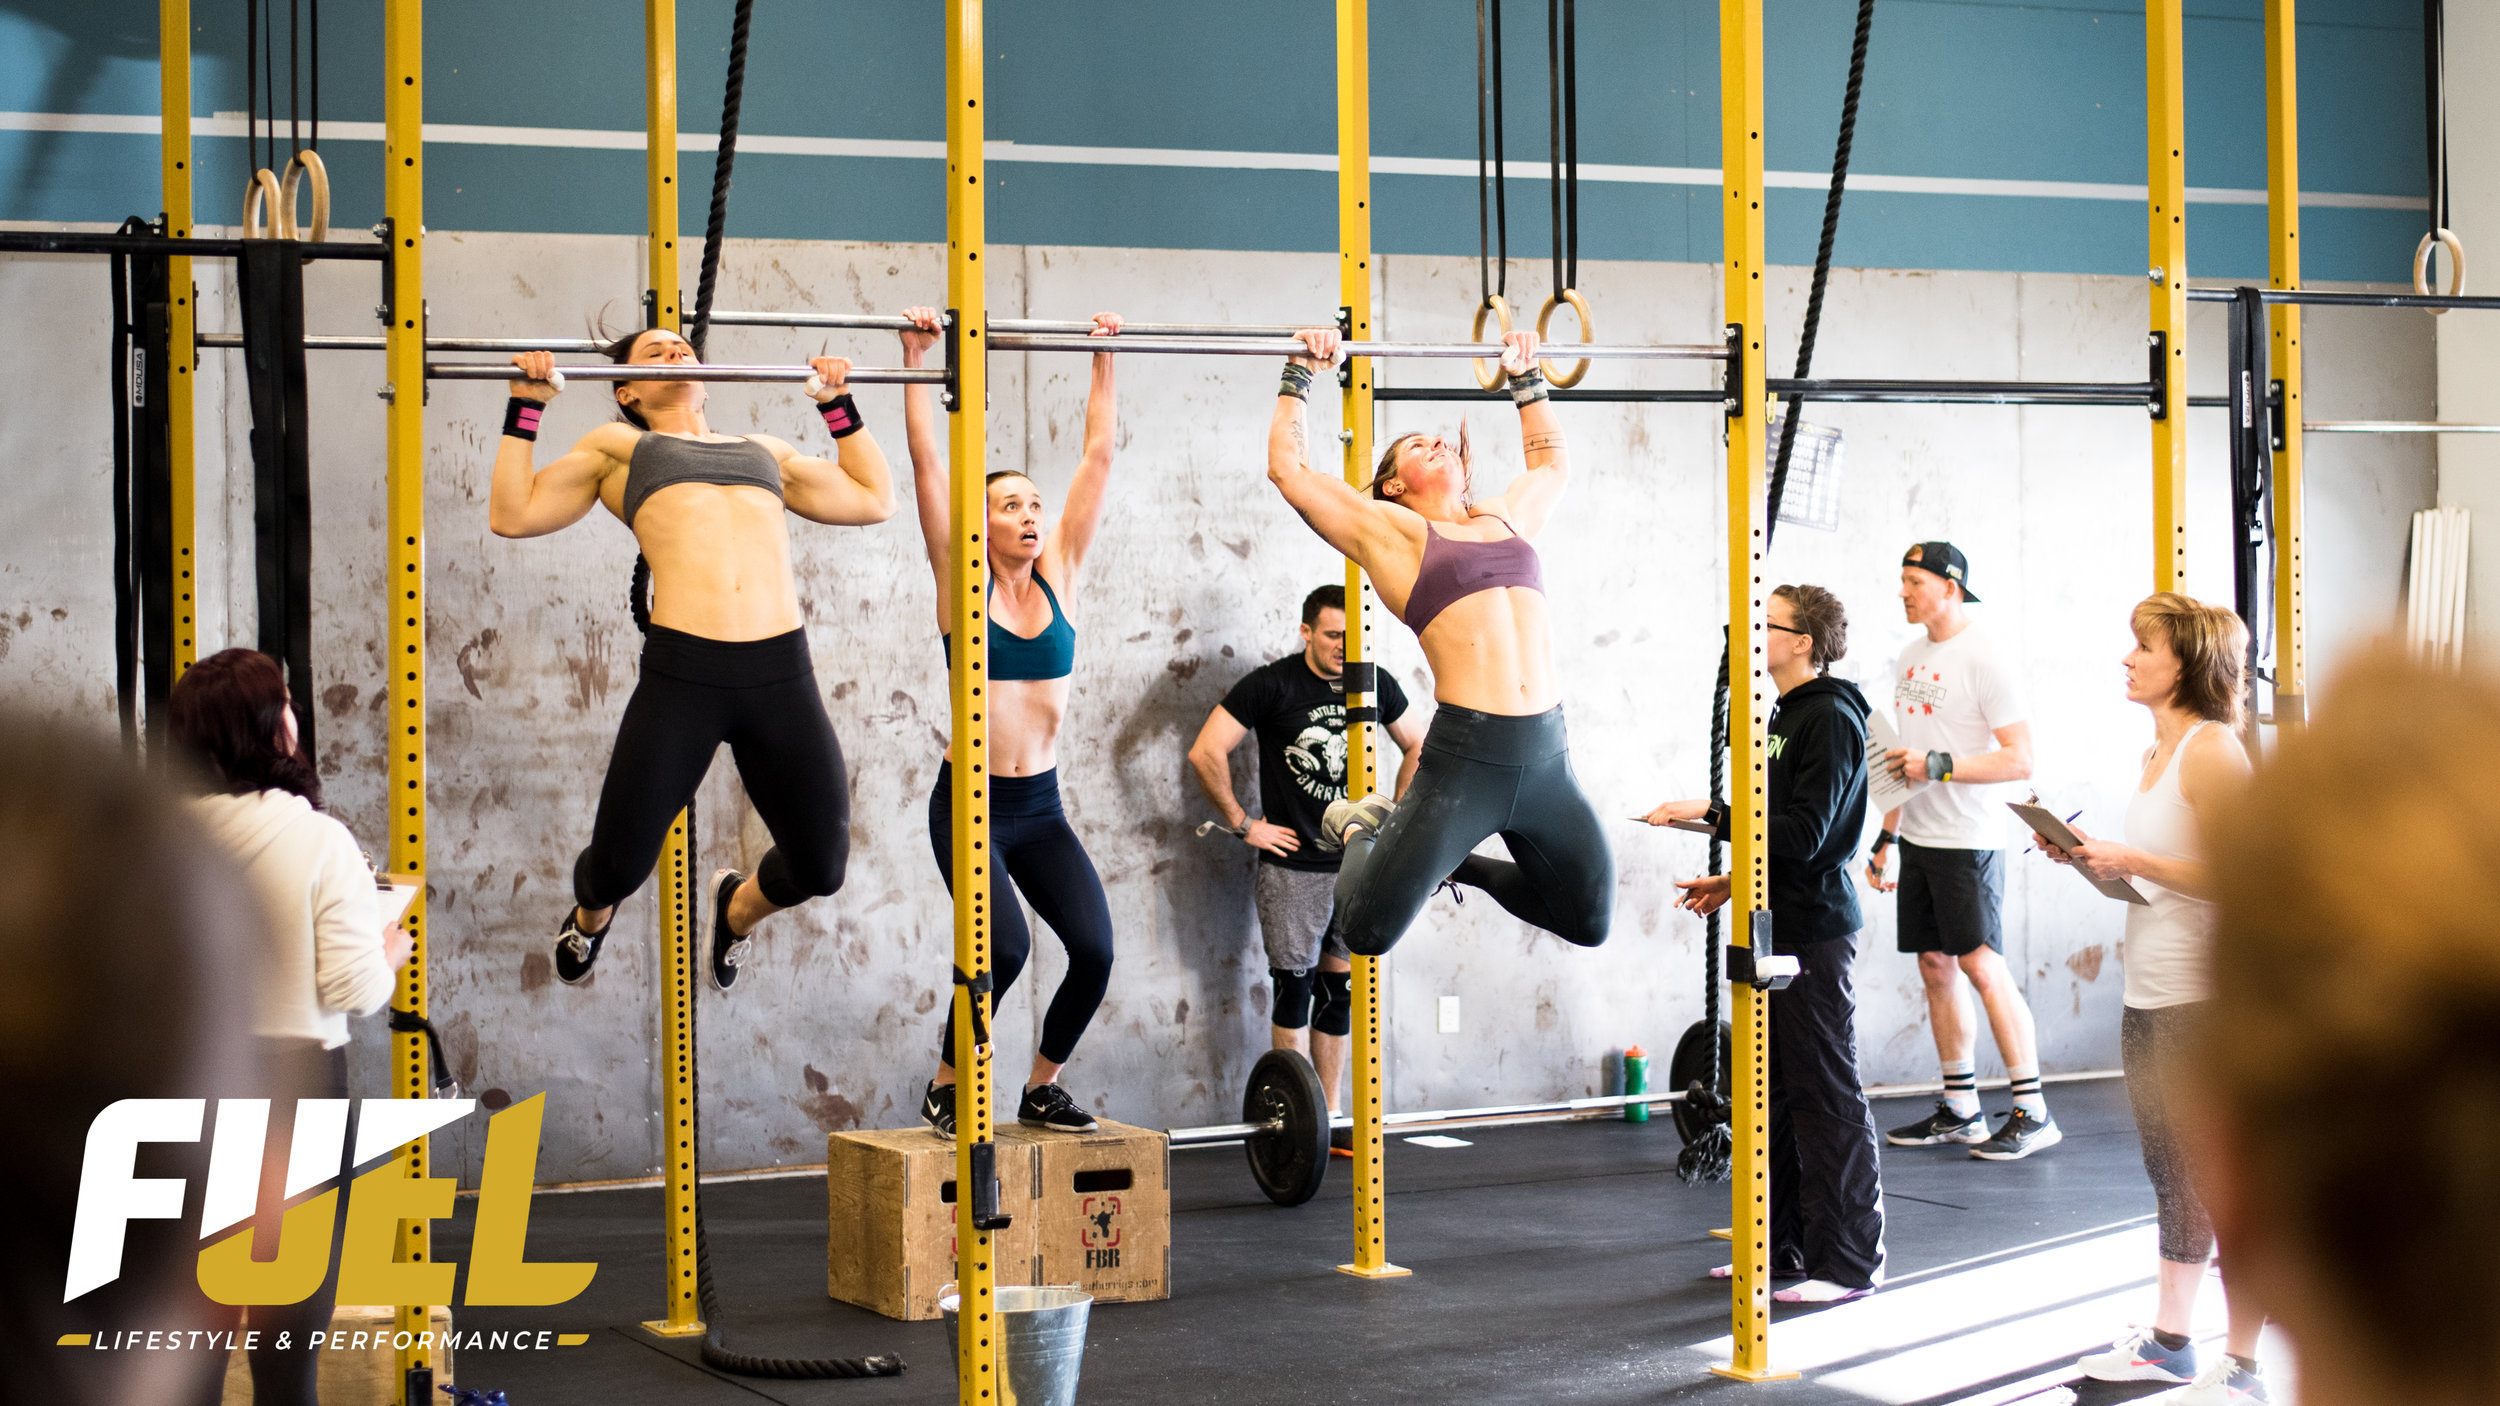 CrossFit Open - Starting Oct. 10th, we get together every Friday, for 5 weeks, to participate in the CrossFit Open. Where grassroots meets greatness: Compete with hundreds of thousands of athletes in CrossFit's largest all-inclusive event.